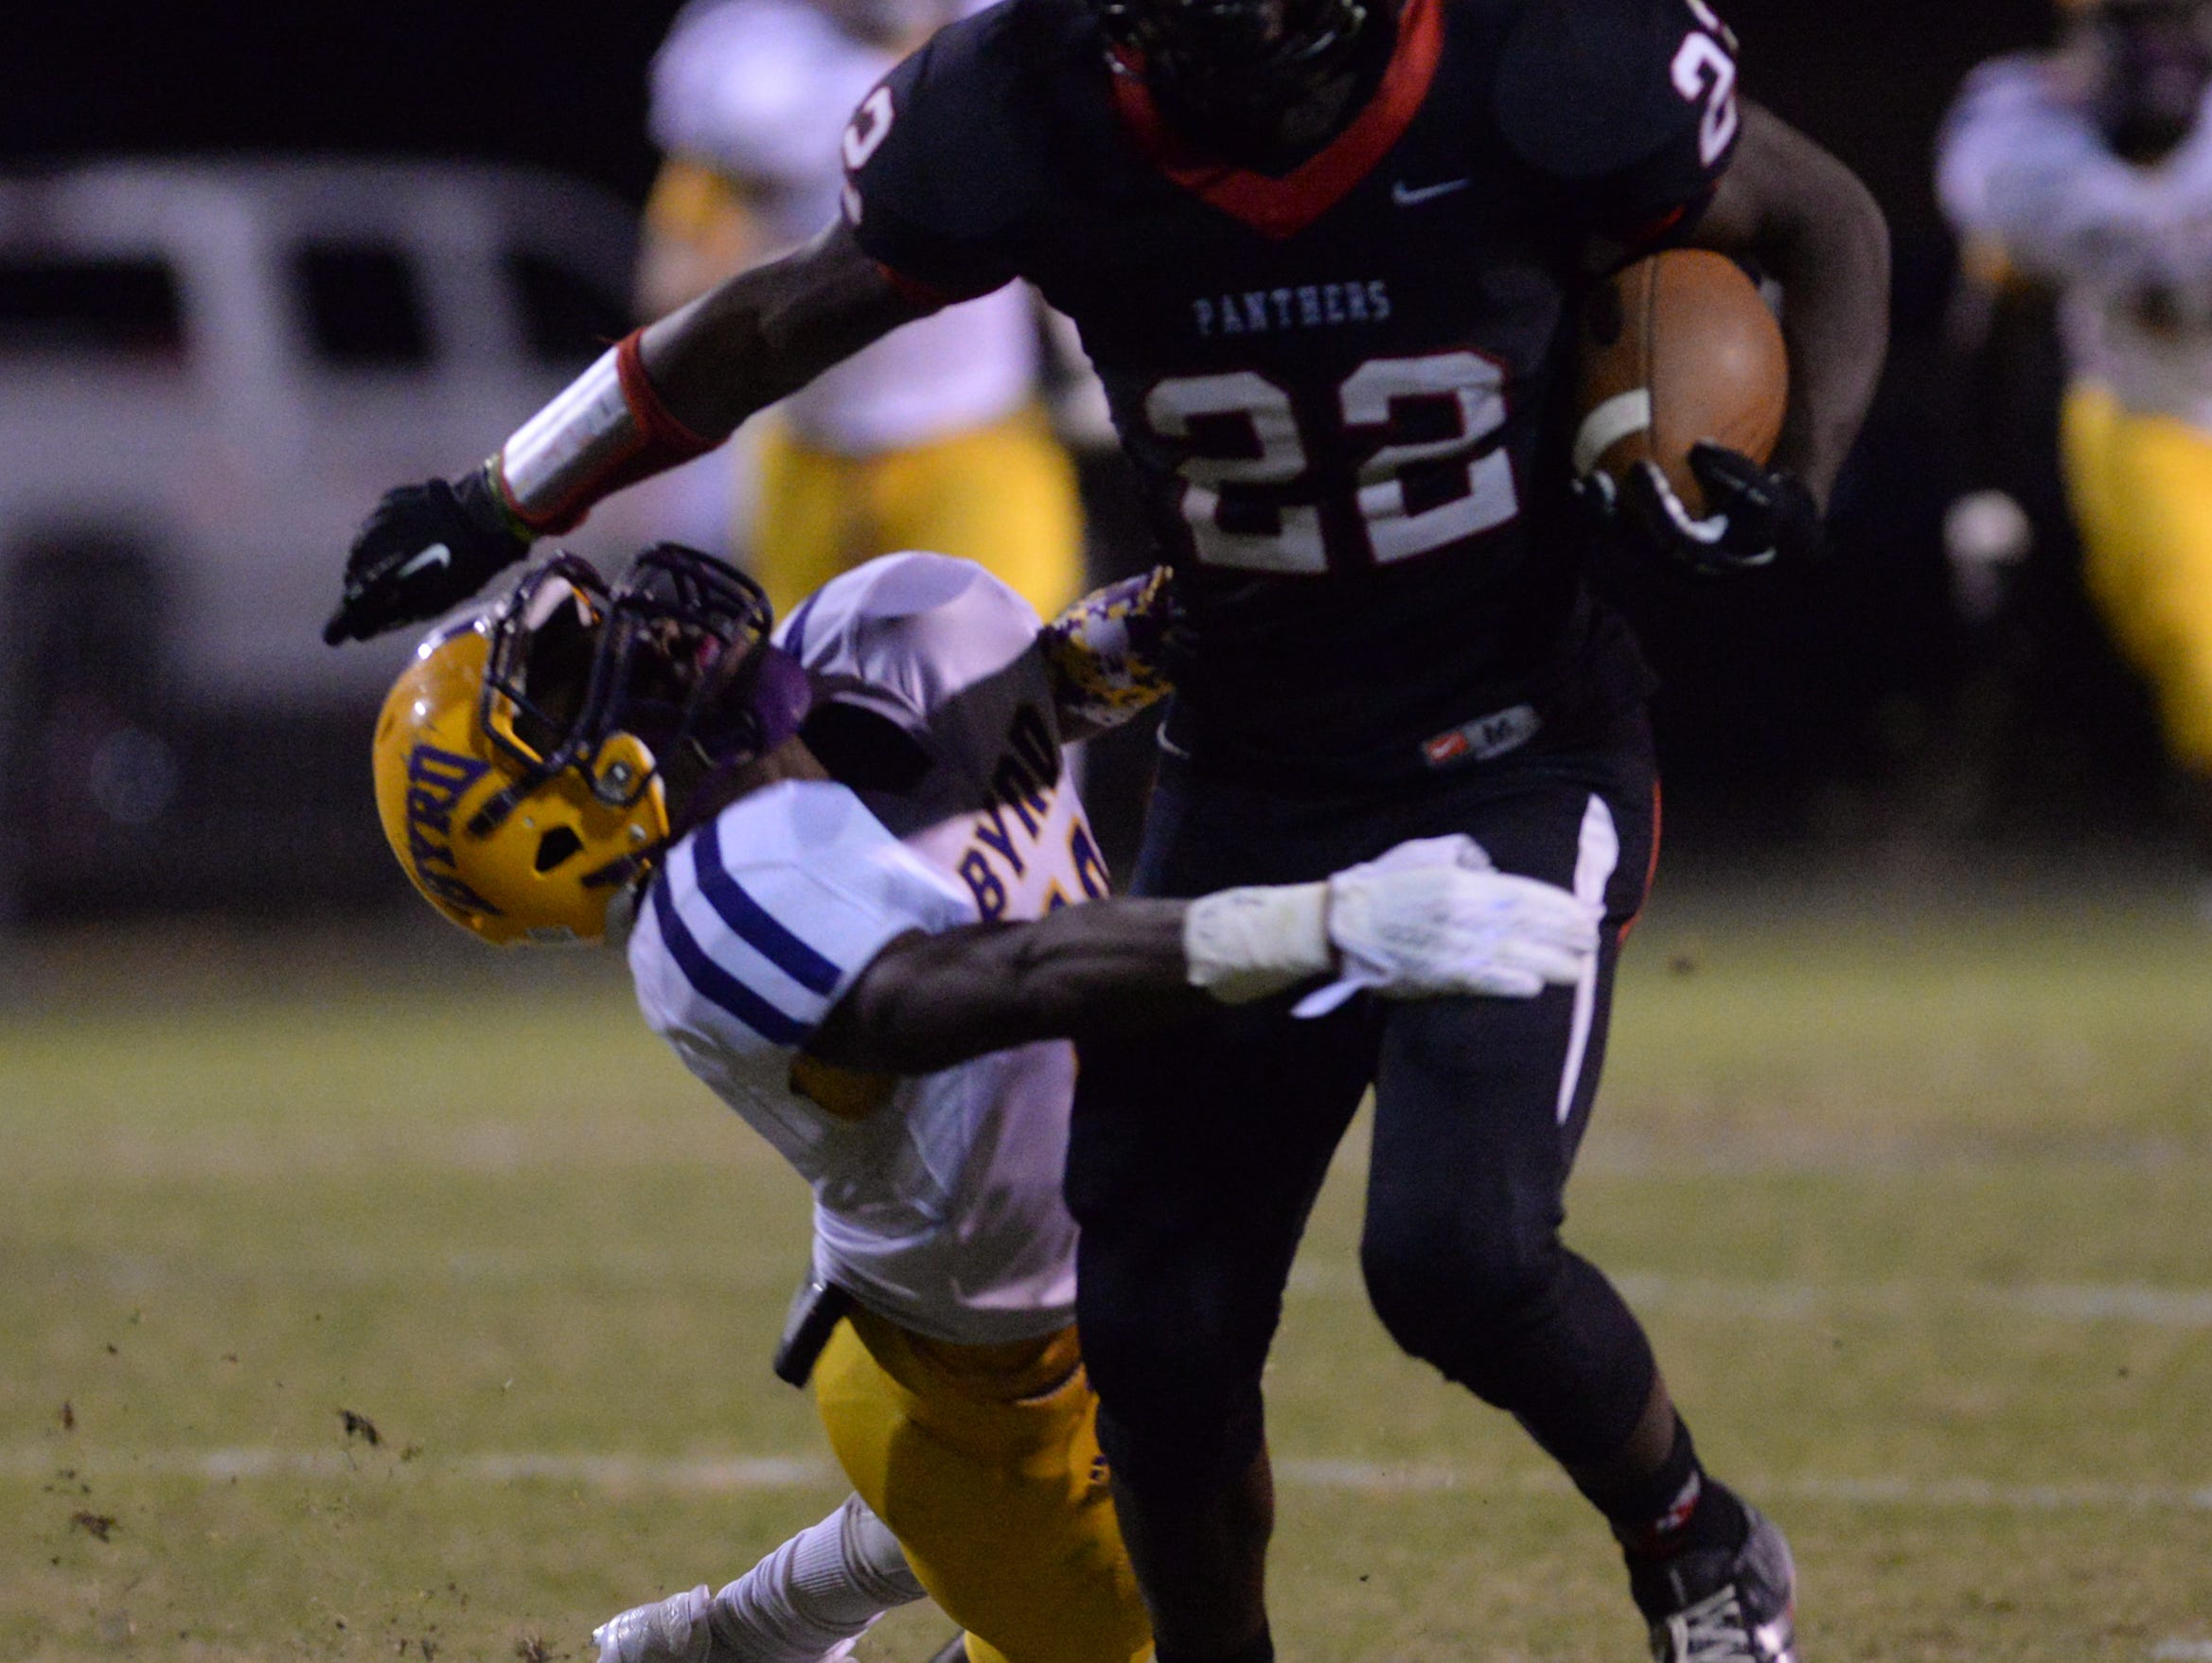 Parkway running back Robert McKnight looks to evade a tackler in a 20-6 win over Byrd last season.